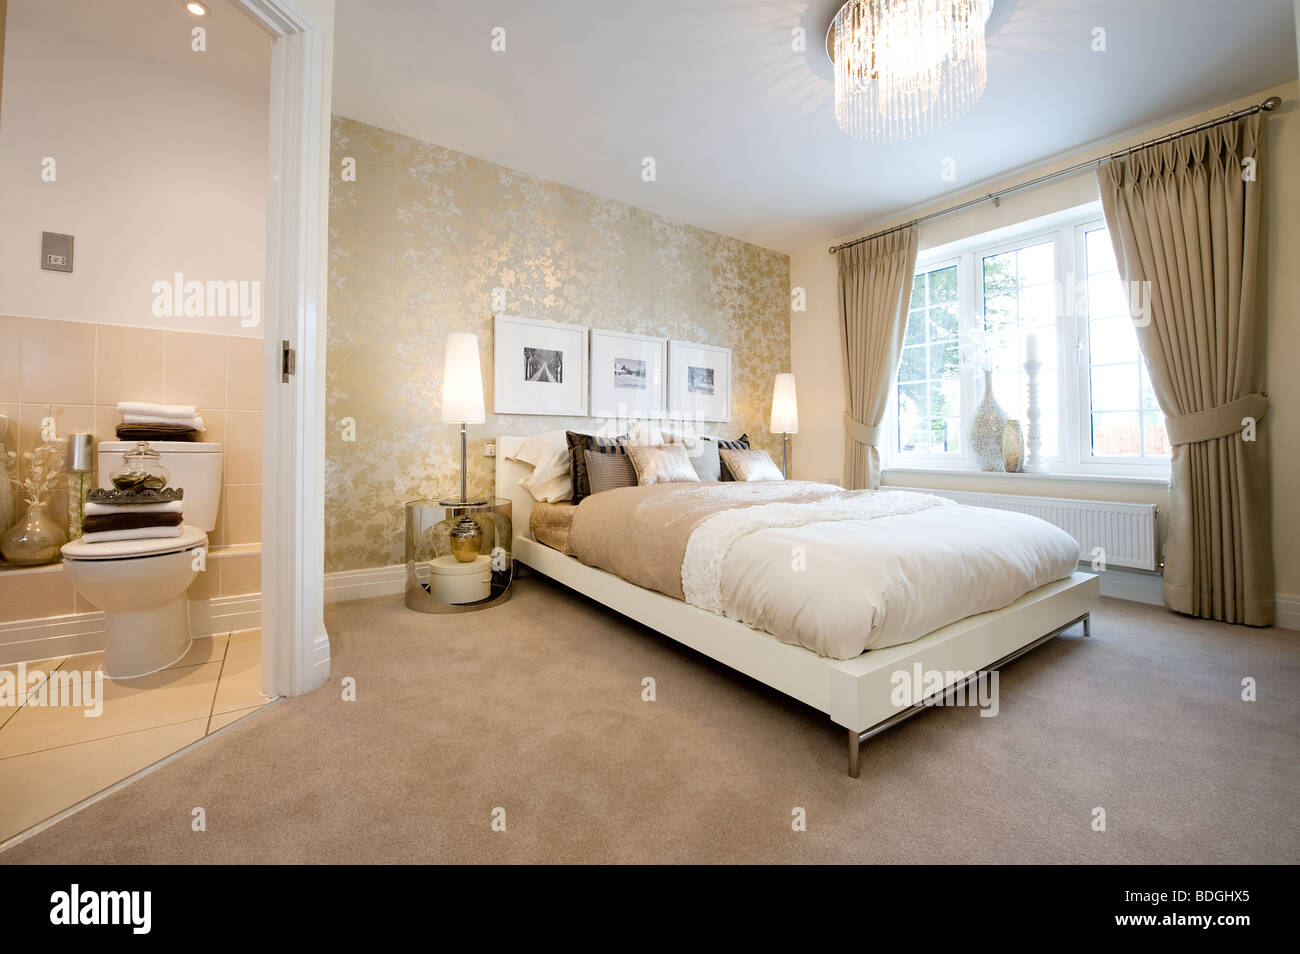 Beautifully decorated bedroom with a double bed and ensuite bathroom in a  show home. Ensuite Bathroom Stock Photos   Ensuite Bathroom Stock Images   Alamy